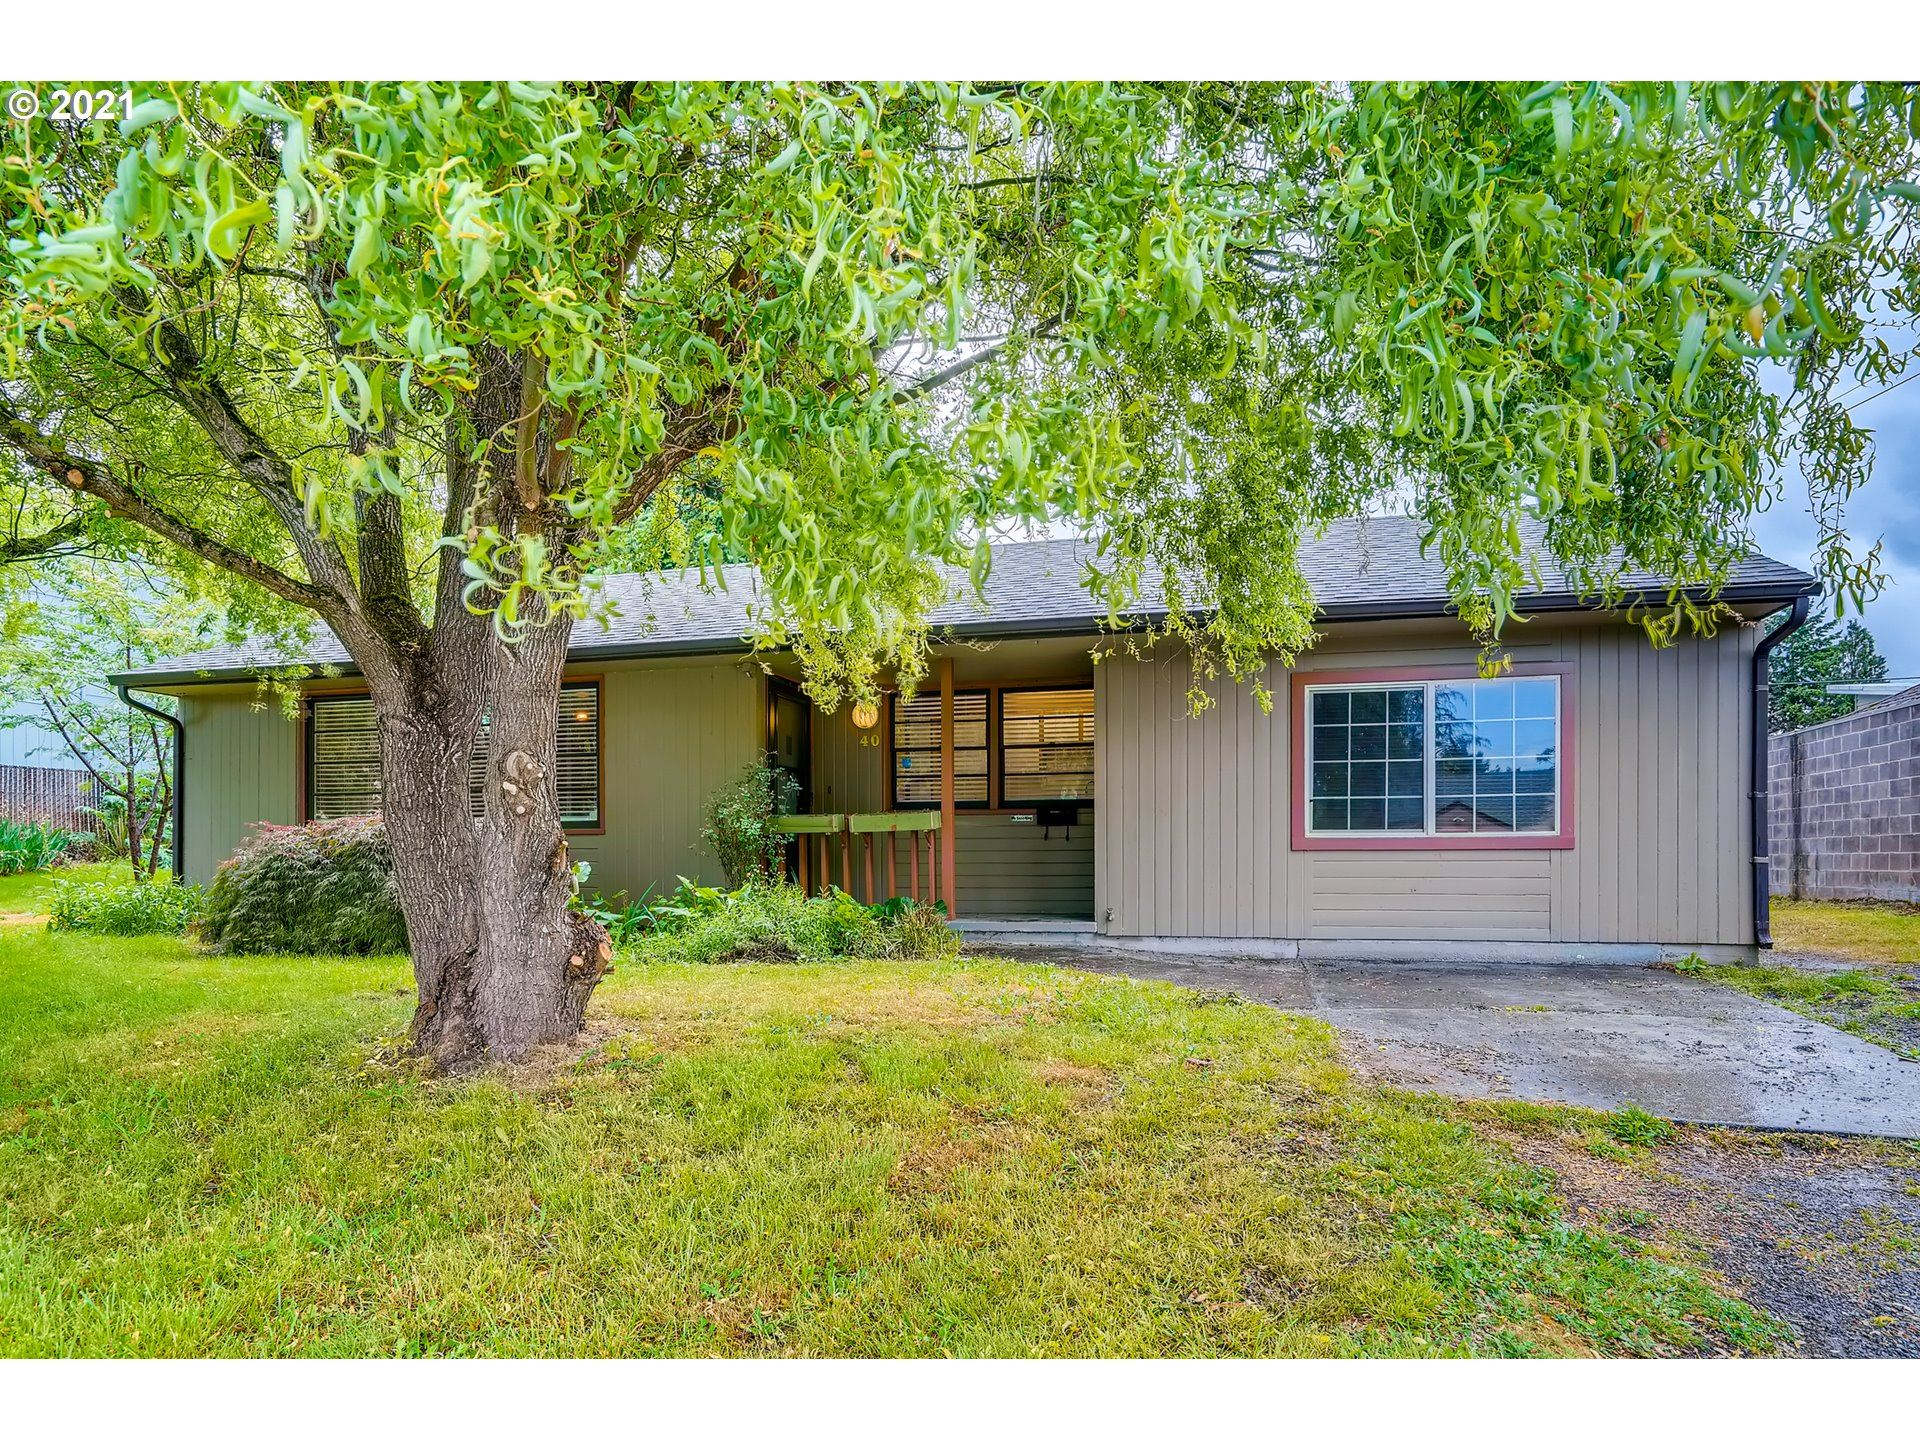 40 SE 89TH AVE, Portland, OR 97216 - MLS#: 21165325